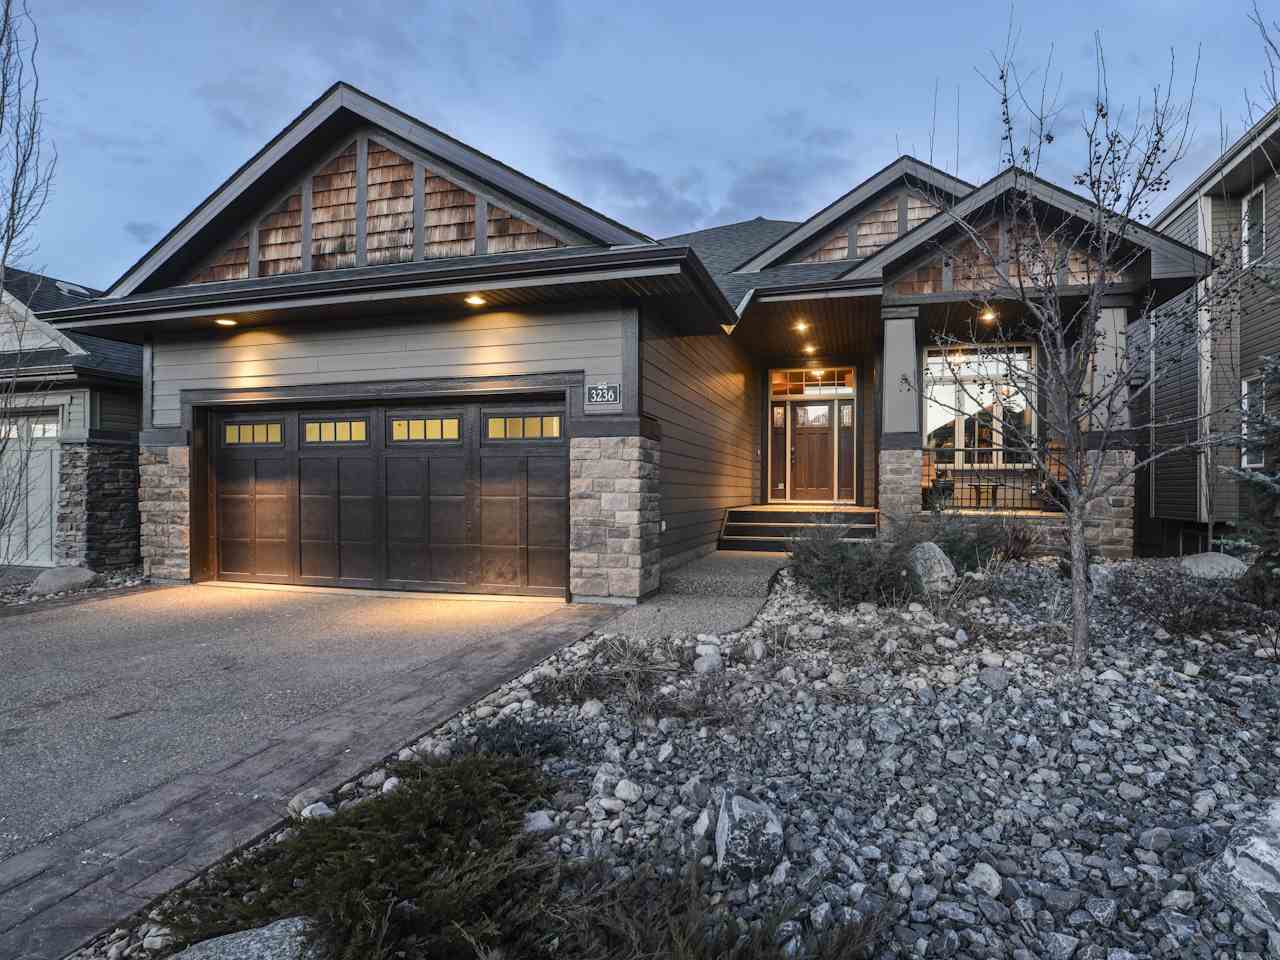 Exquisite 1,811 sq.ft. bungalow with extensive stonework in beautiful Windermere! This former show home built by Hillview Homes has more than one could imagine & the moment you walk thru the front door you feel like you?re home. A bright, open main floor boasts a living room with floor-to-ceiling stone gas f/p, coffered ceiling & expansive windows overlooking the maintenance free backyard & community pond. Opening to a spectacular gourmet kitchen with built-in S/S appliances, oversized island, walk-thru pantry, and breakfast nook with access to the back deck. Main floor living is at it?s best with an impressive den with custom ceiling & built-in bookcase, and a master suite with relaxing 5 piece ensuite including a free standing soaker tub and custom glass shower. Descend the curved staircase to the warm & welcoming walk-out lower level featuring a spacious rec room with double sided f/p, wet bar & 2 addt?l bedrooms. Relax on the beautiful patio or enjoy an evening under the stars around the fireplace.